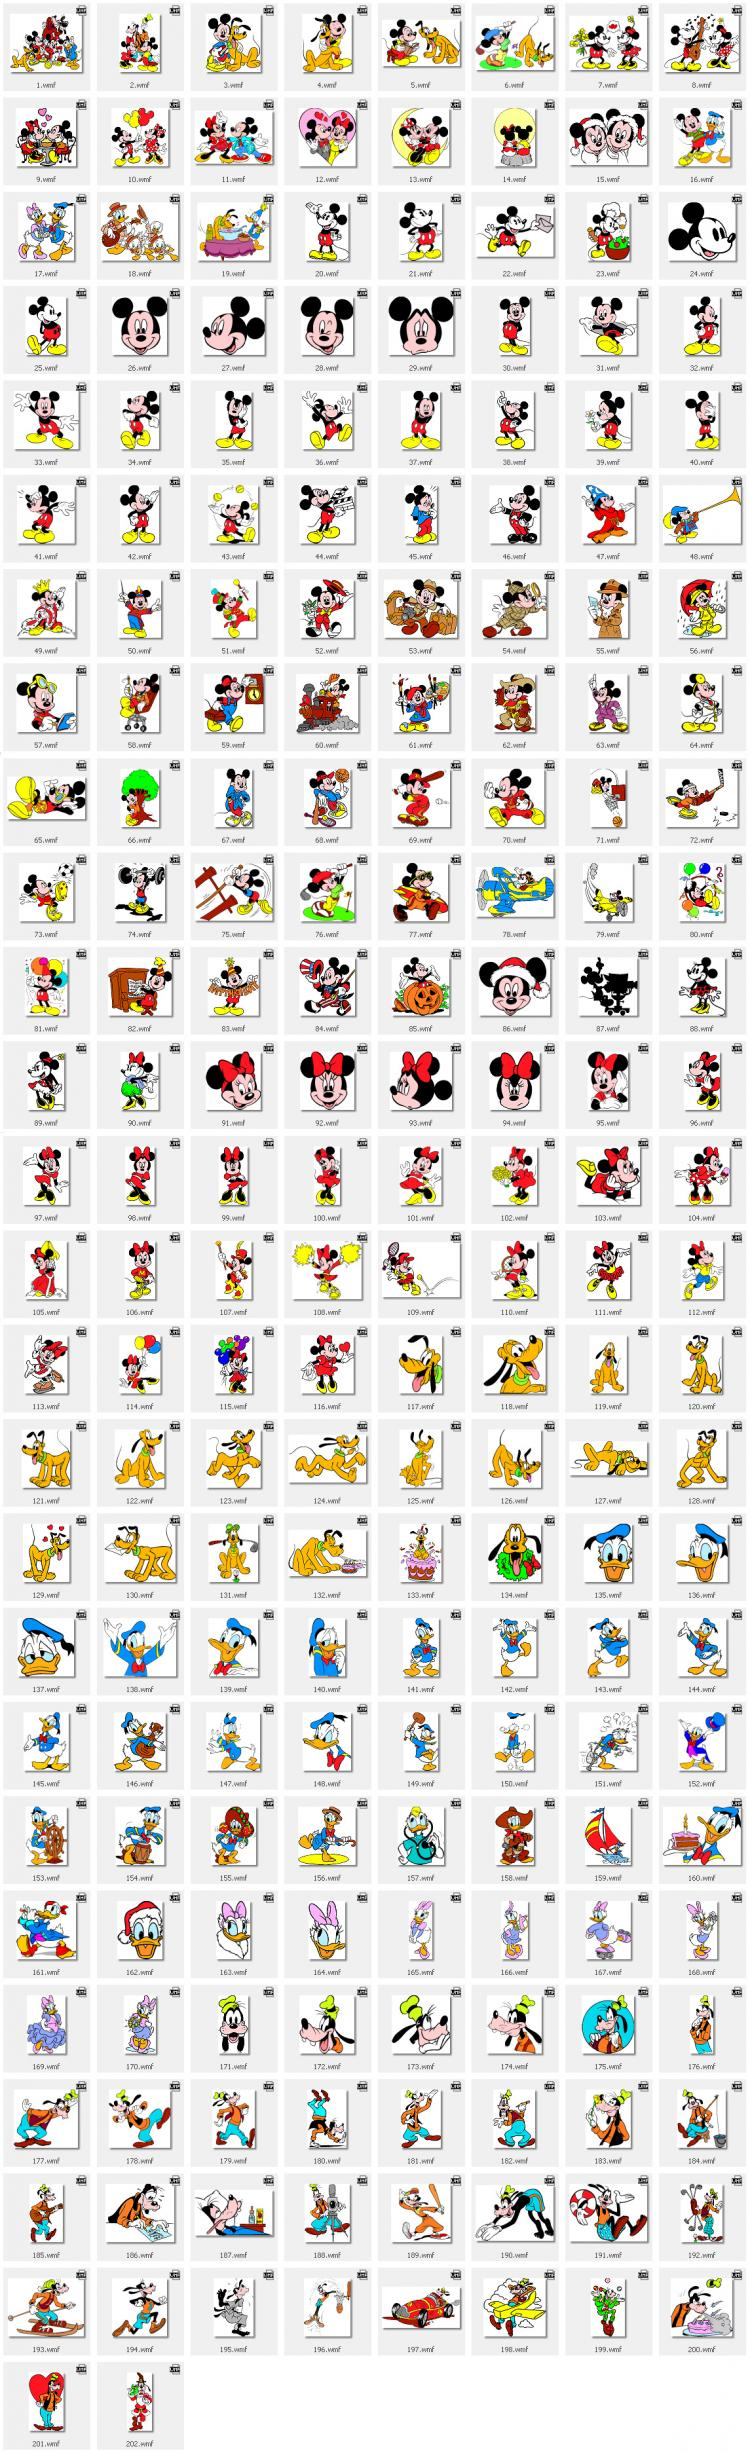 free vector Disney, Mickey Mouse, Donald Duck, Mickey Mouse, Minnie, Pluto